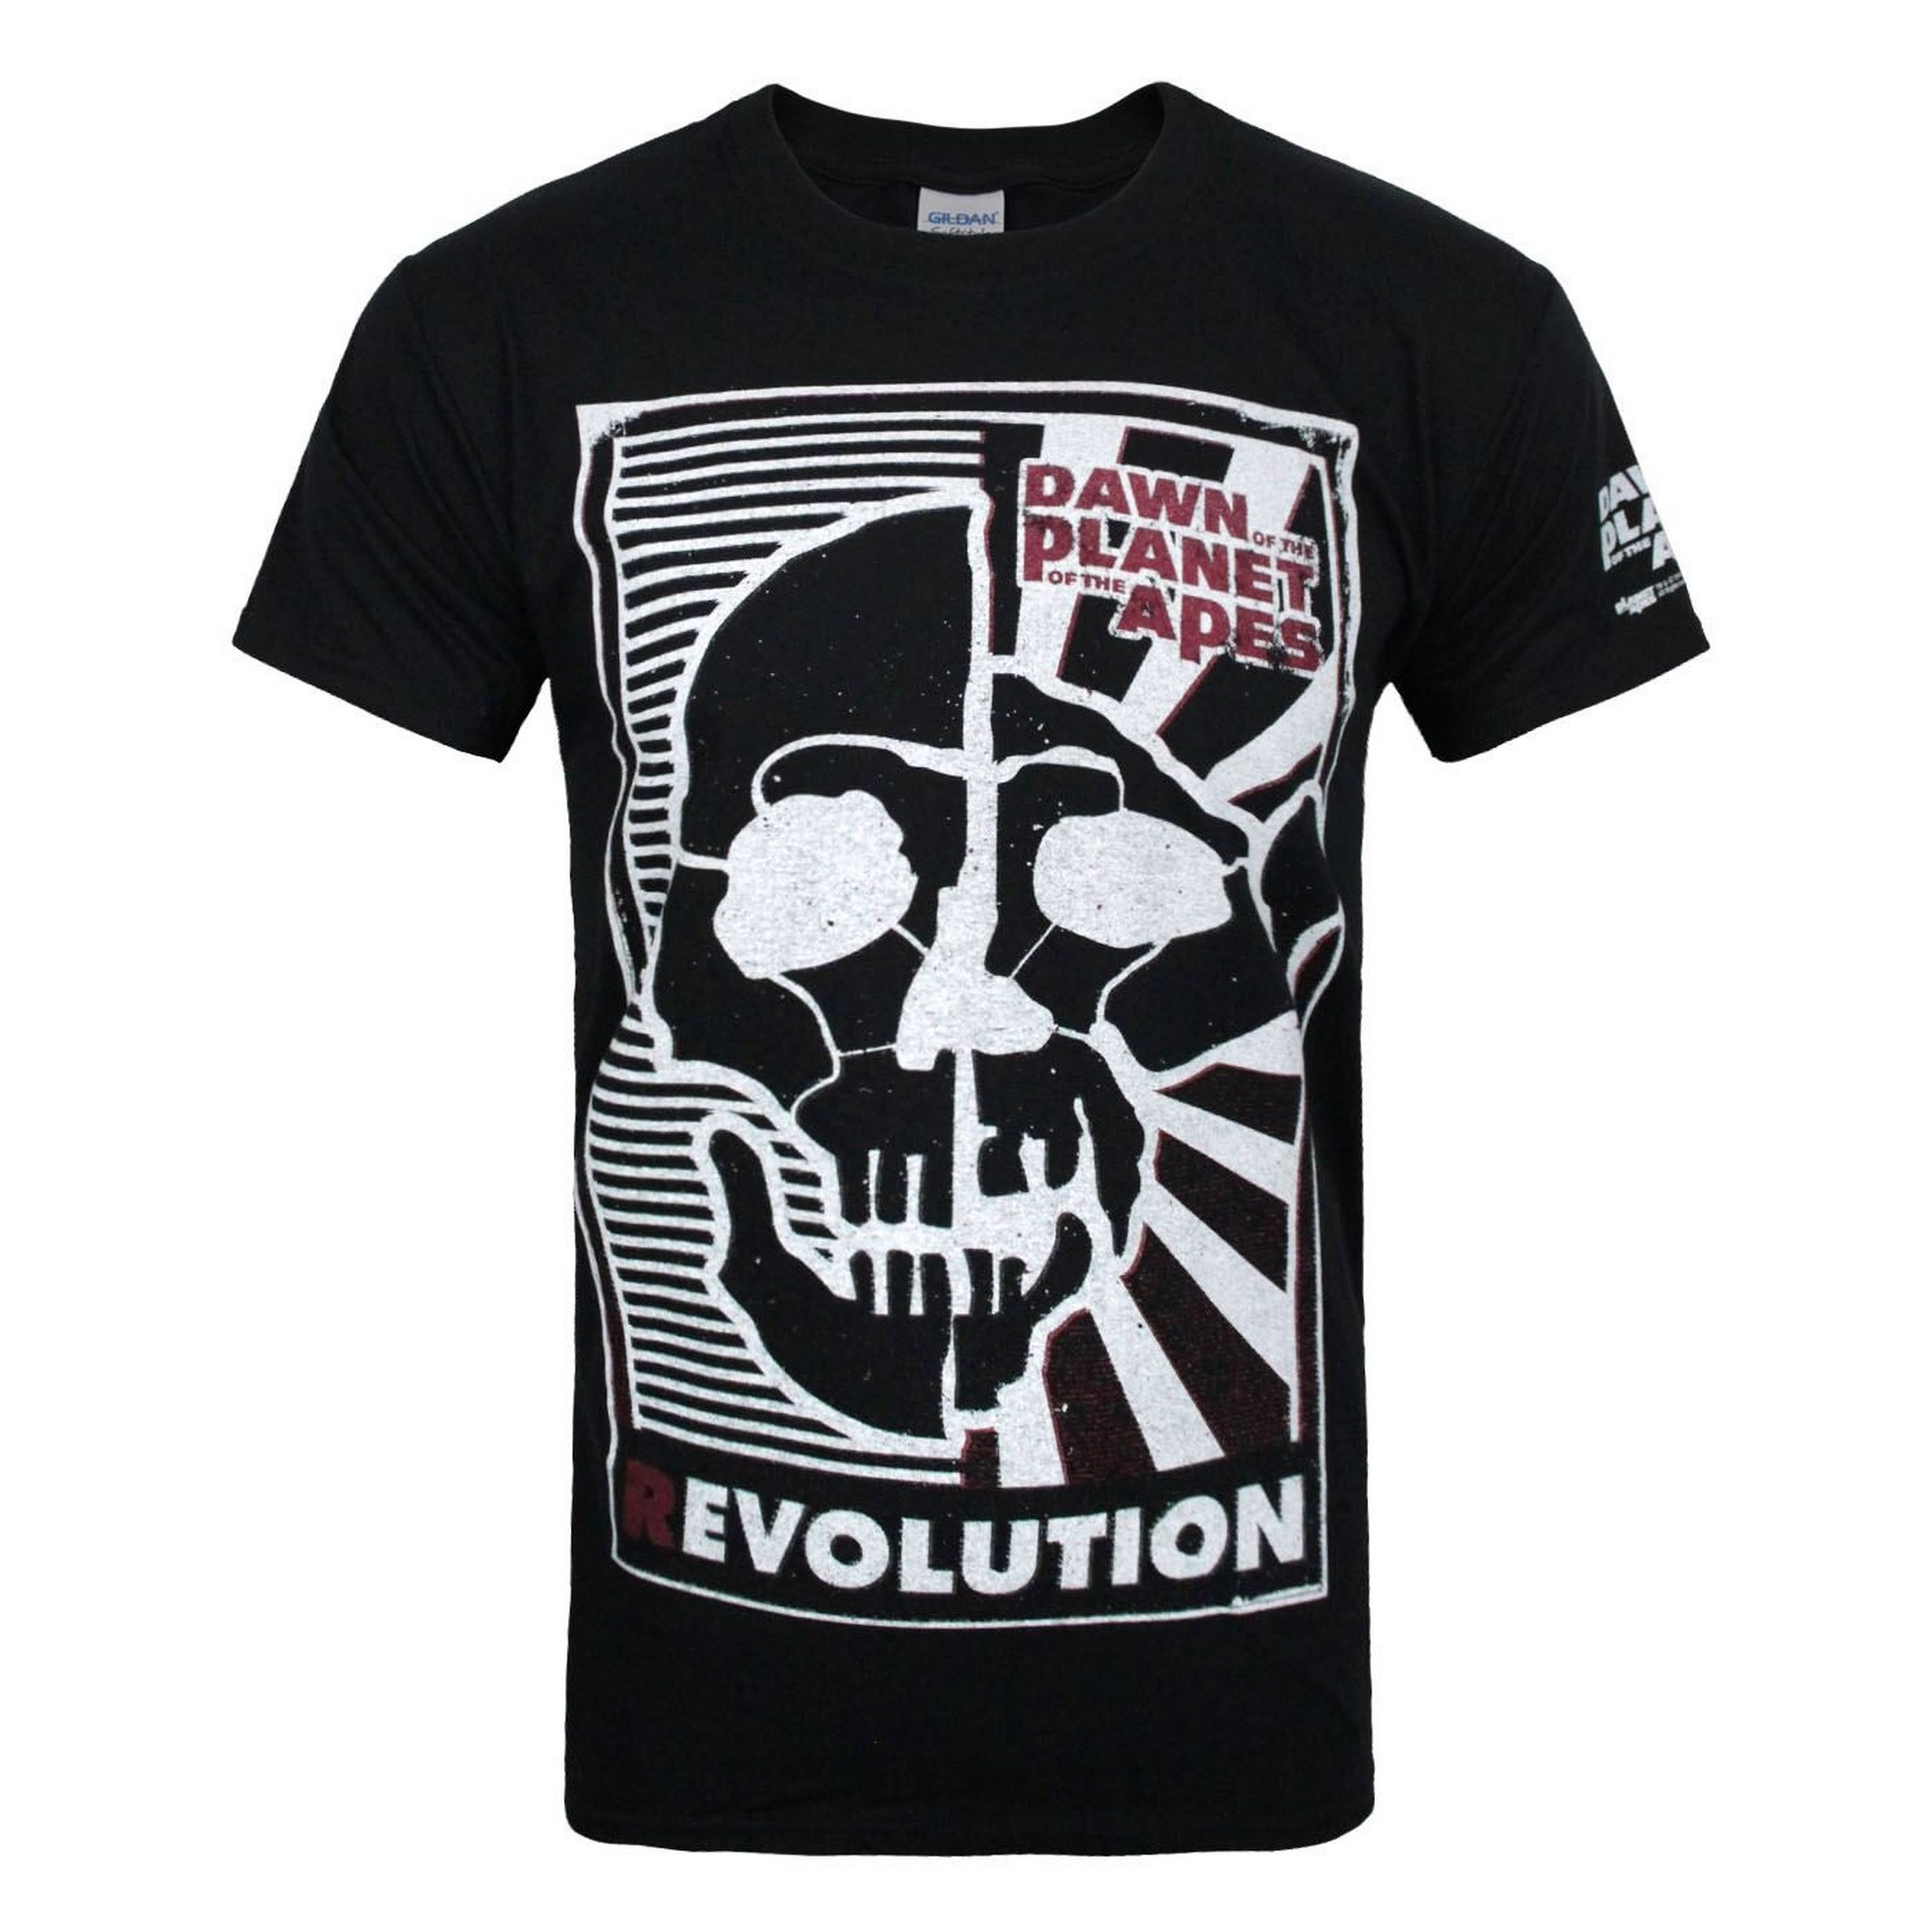 Dawn Of The Planet Of The Apes Official Mens Revolution T-Shirt (L) (Black)